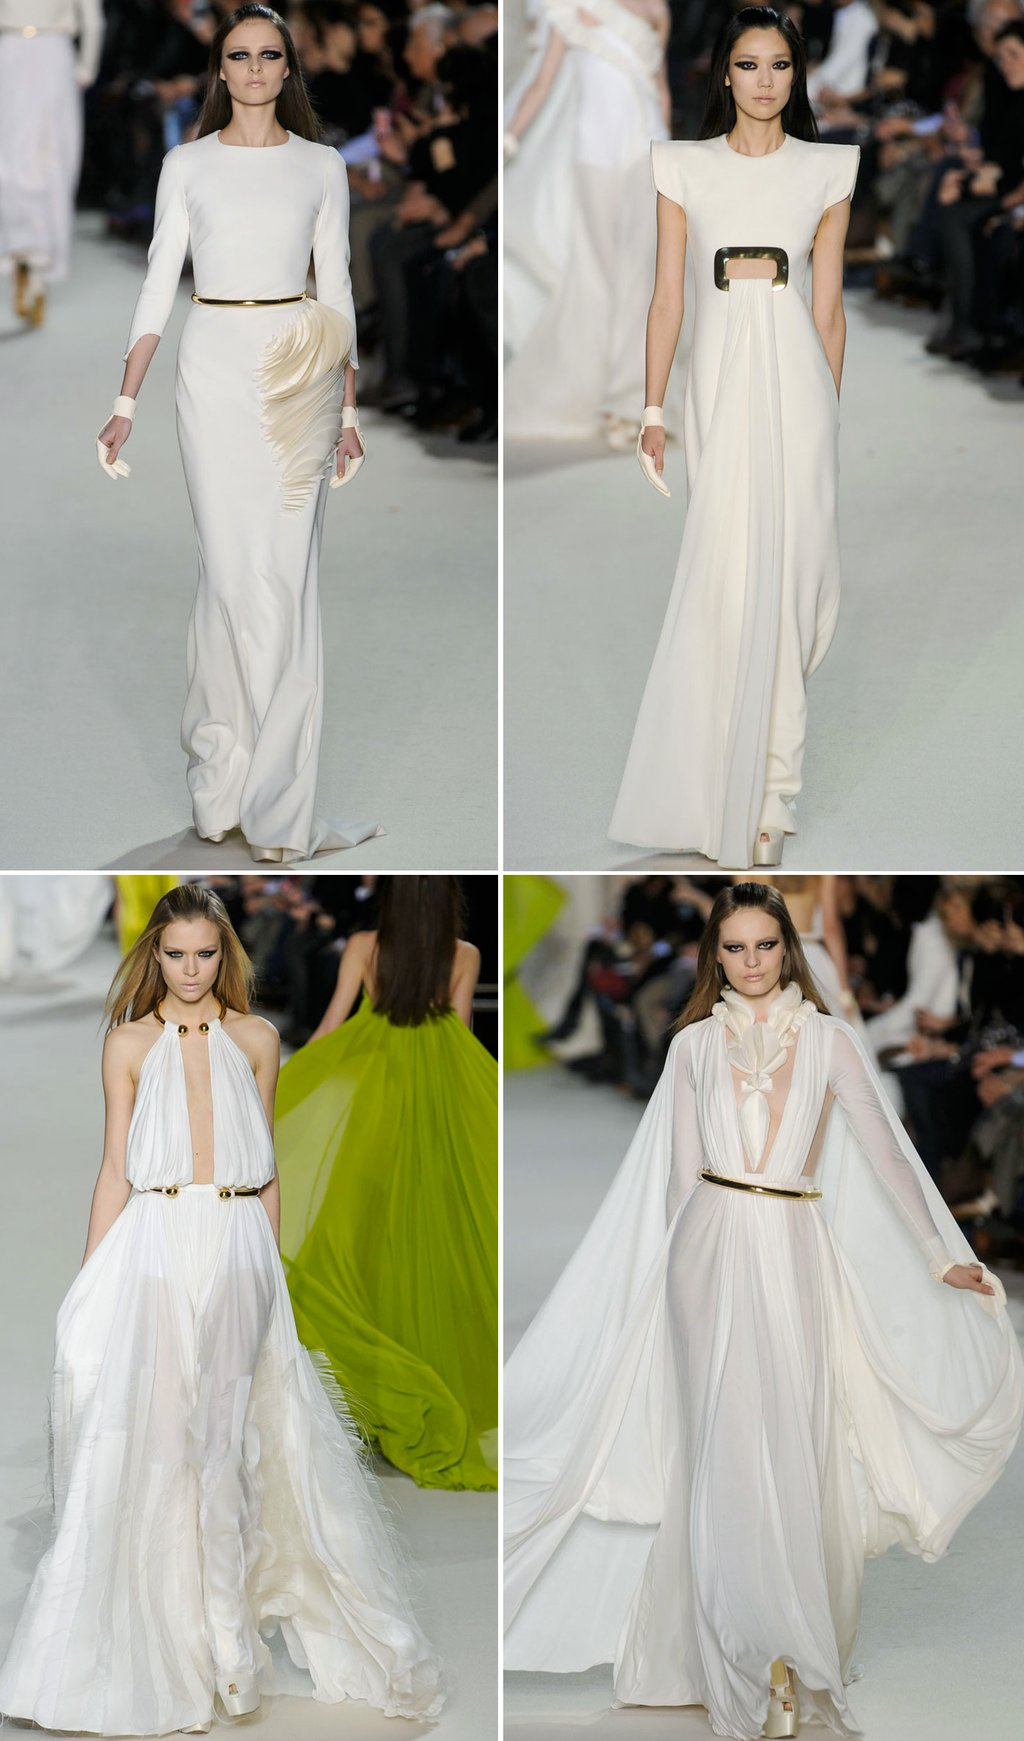 Stephane-rolland-wedding-dress-inspiration-spring-2012-couture.full